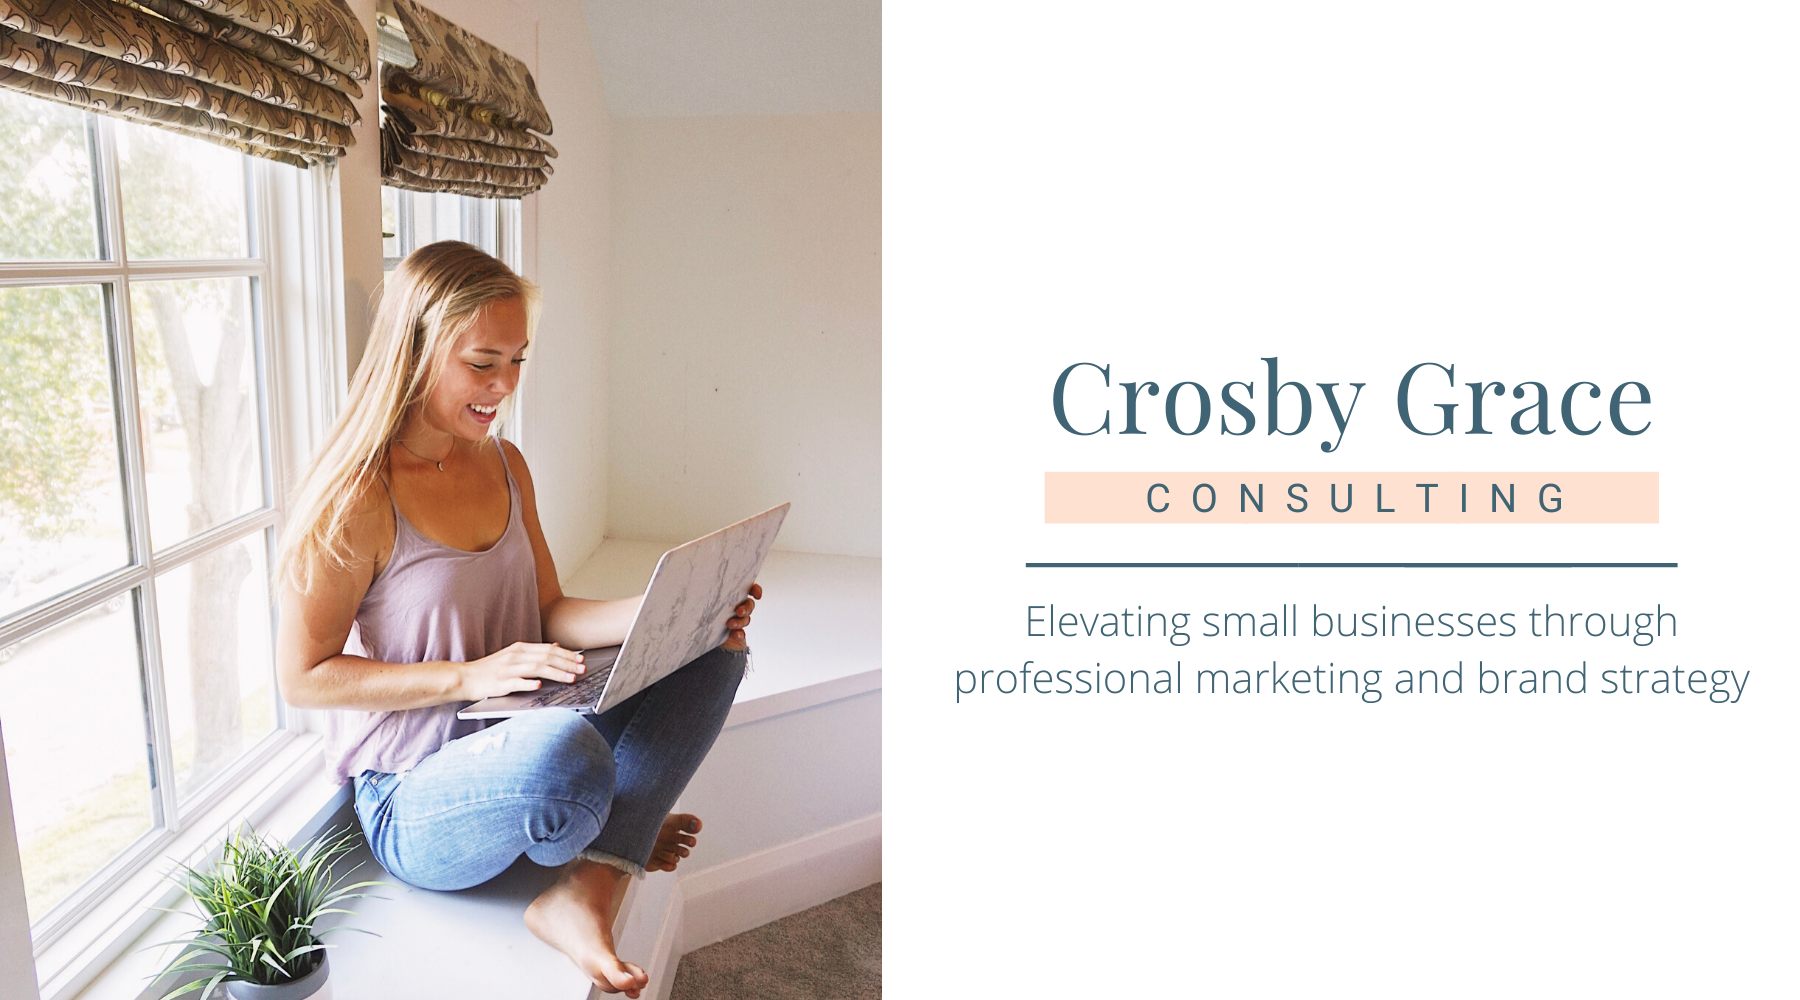 Crosby Grace Consulting